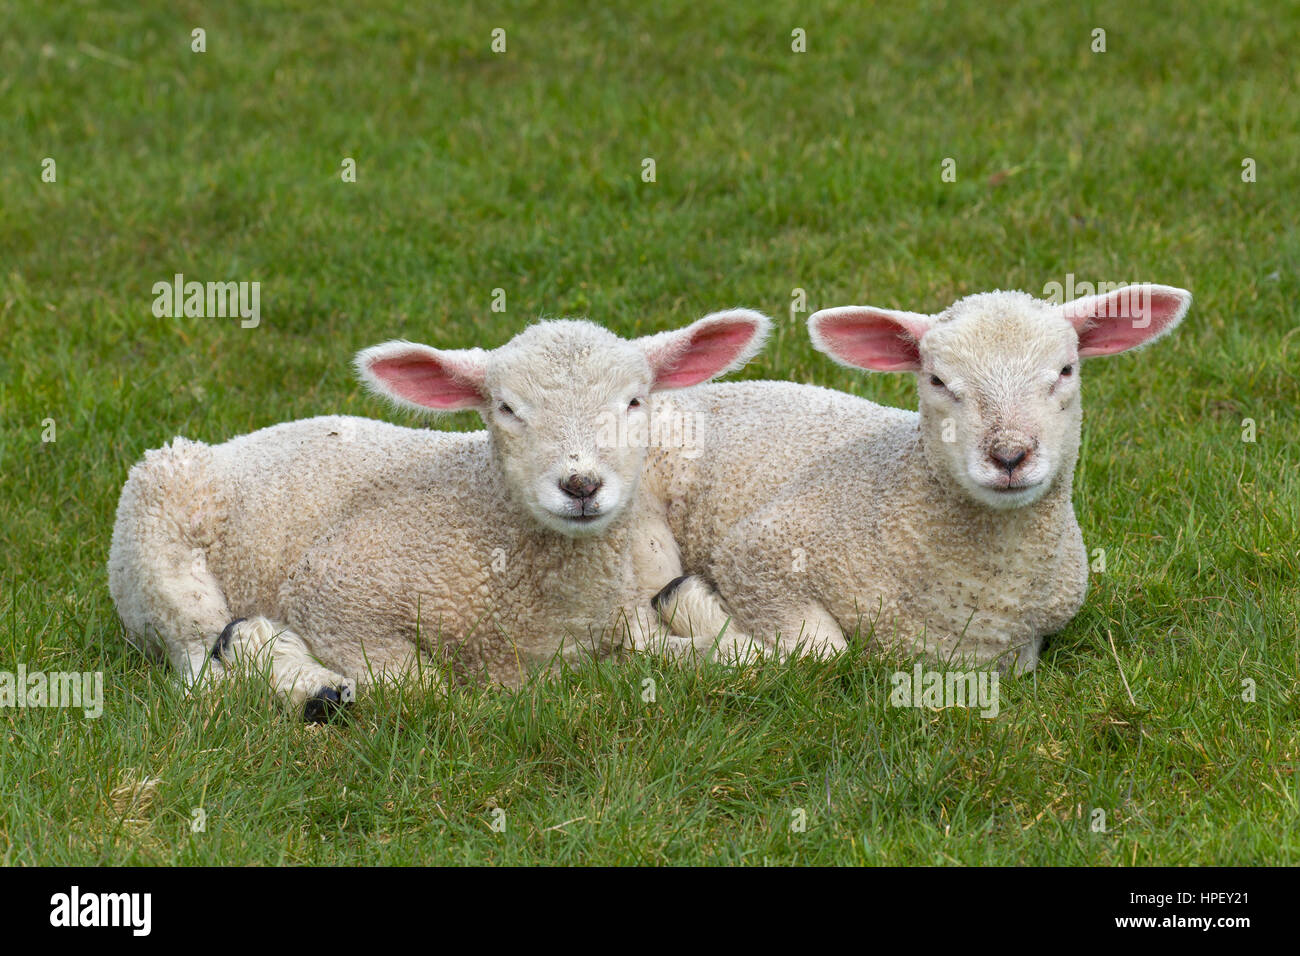 Two white lambs of domestic sheep lying side by side in meadow - Stock Image